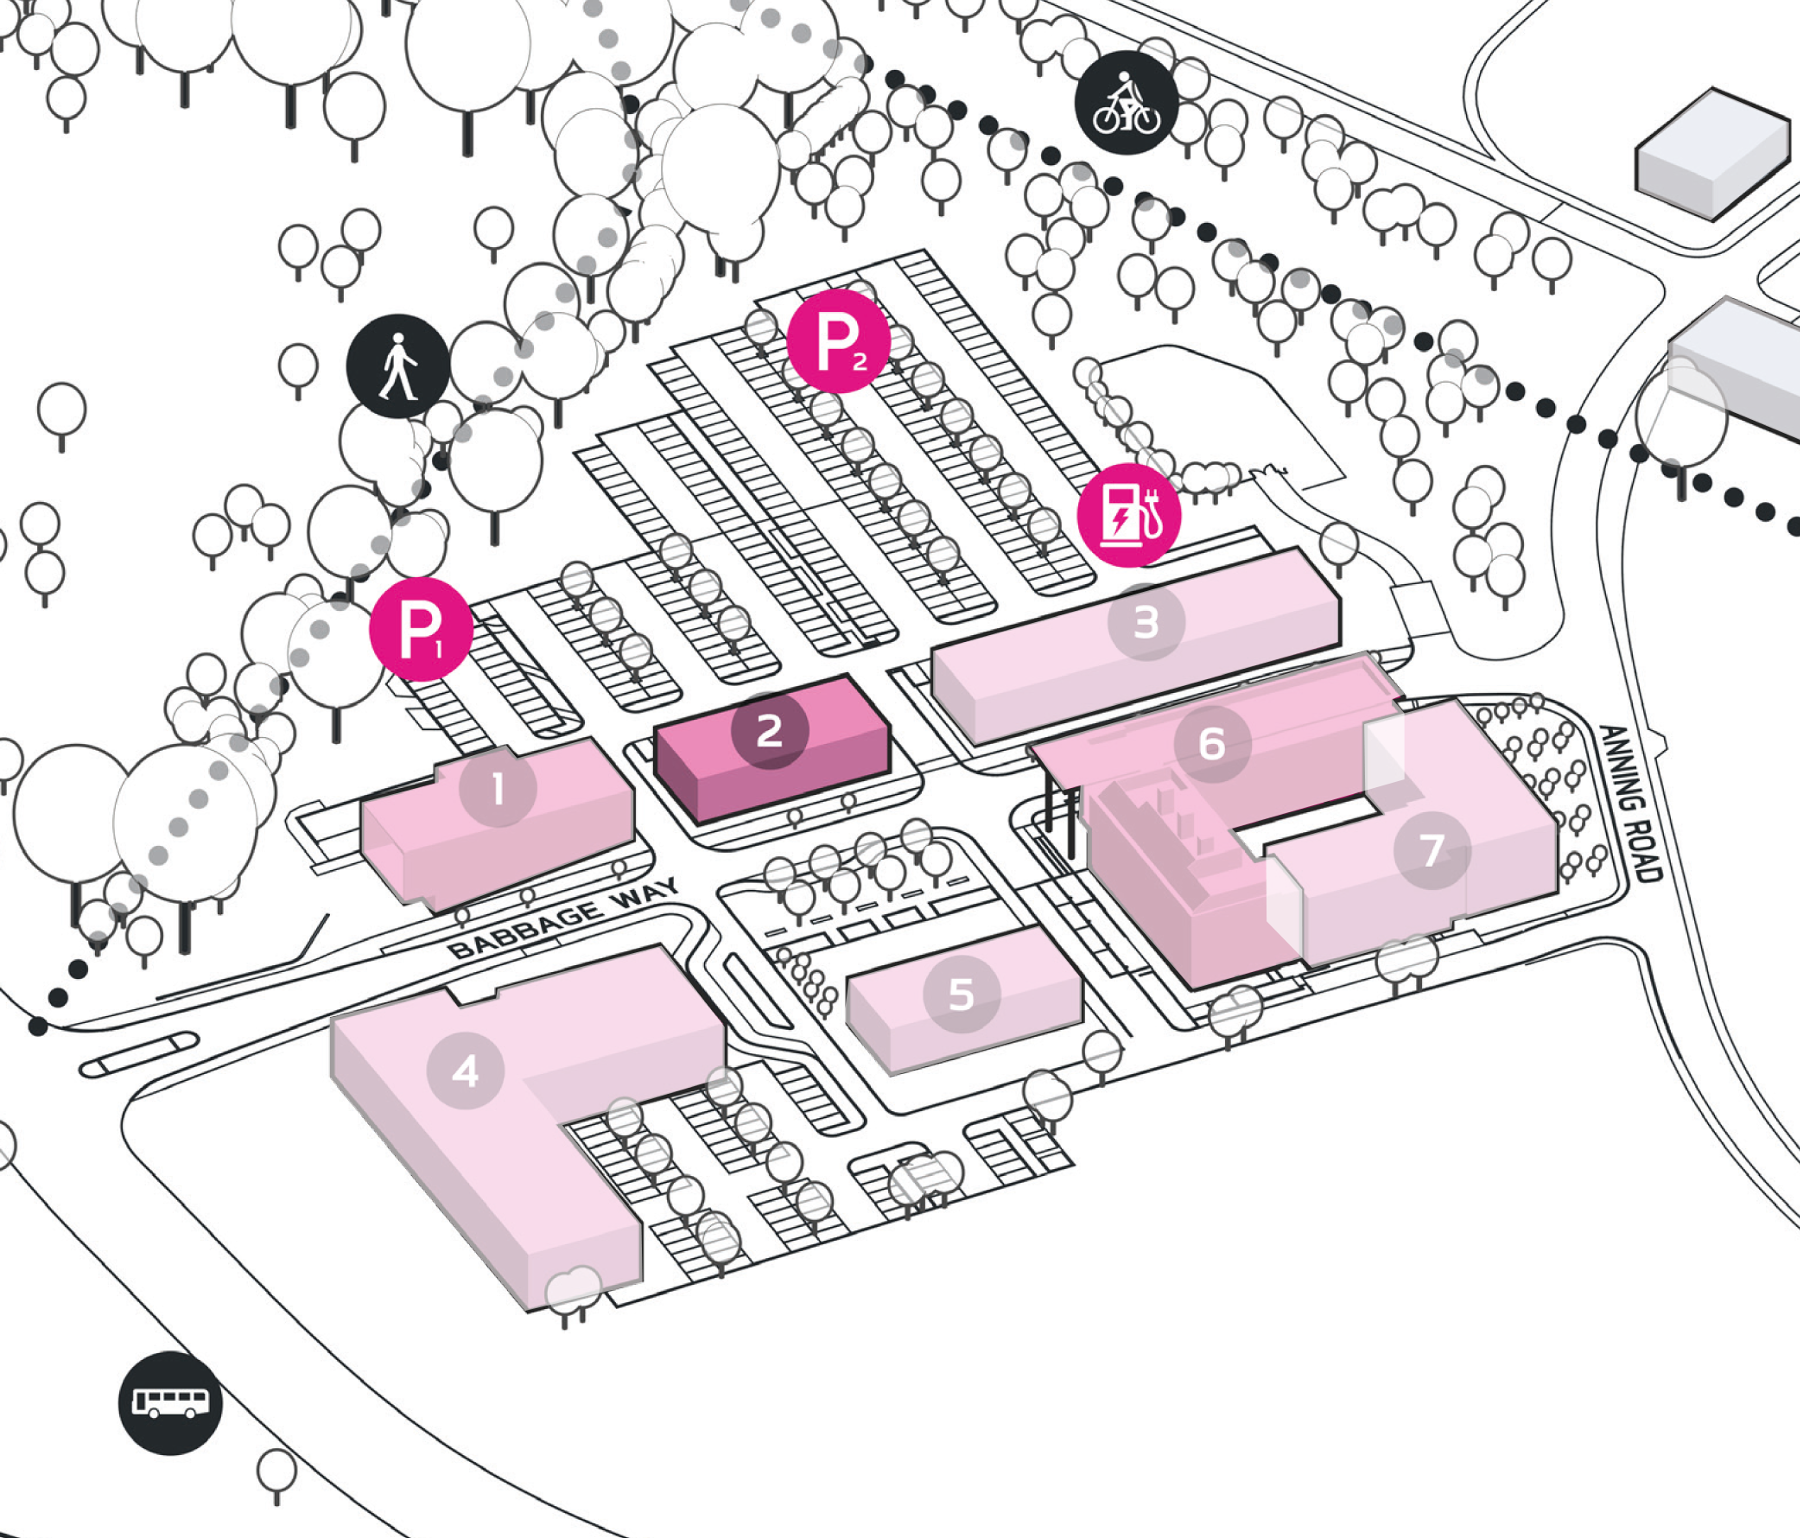 Park Plan highlighting cluster A Building 2